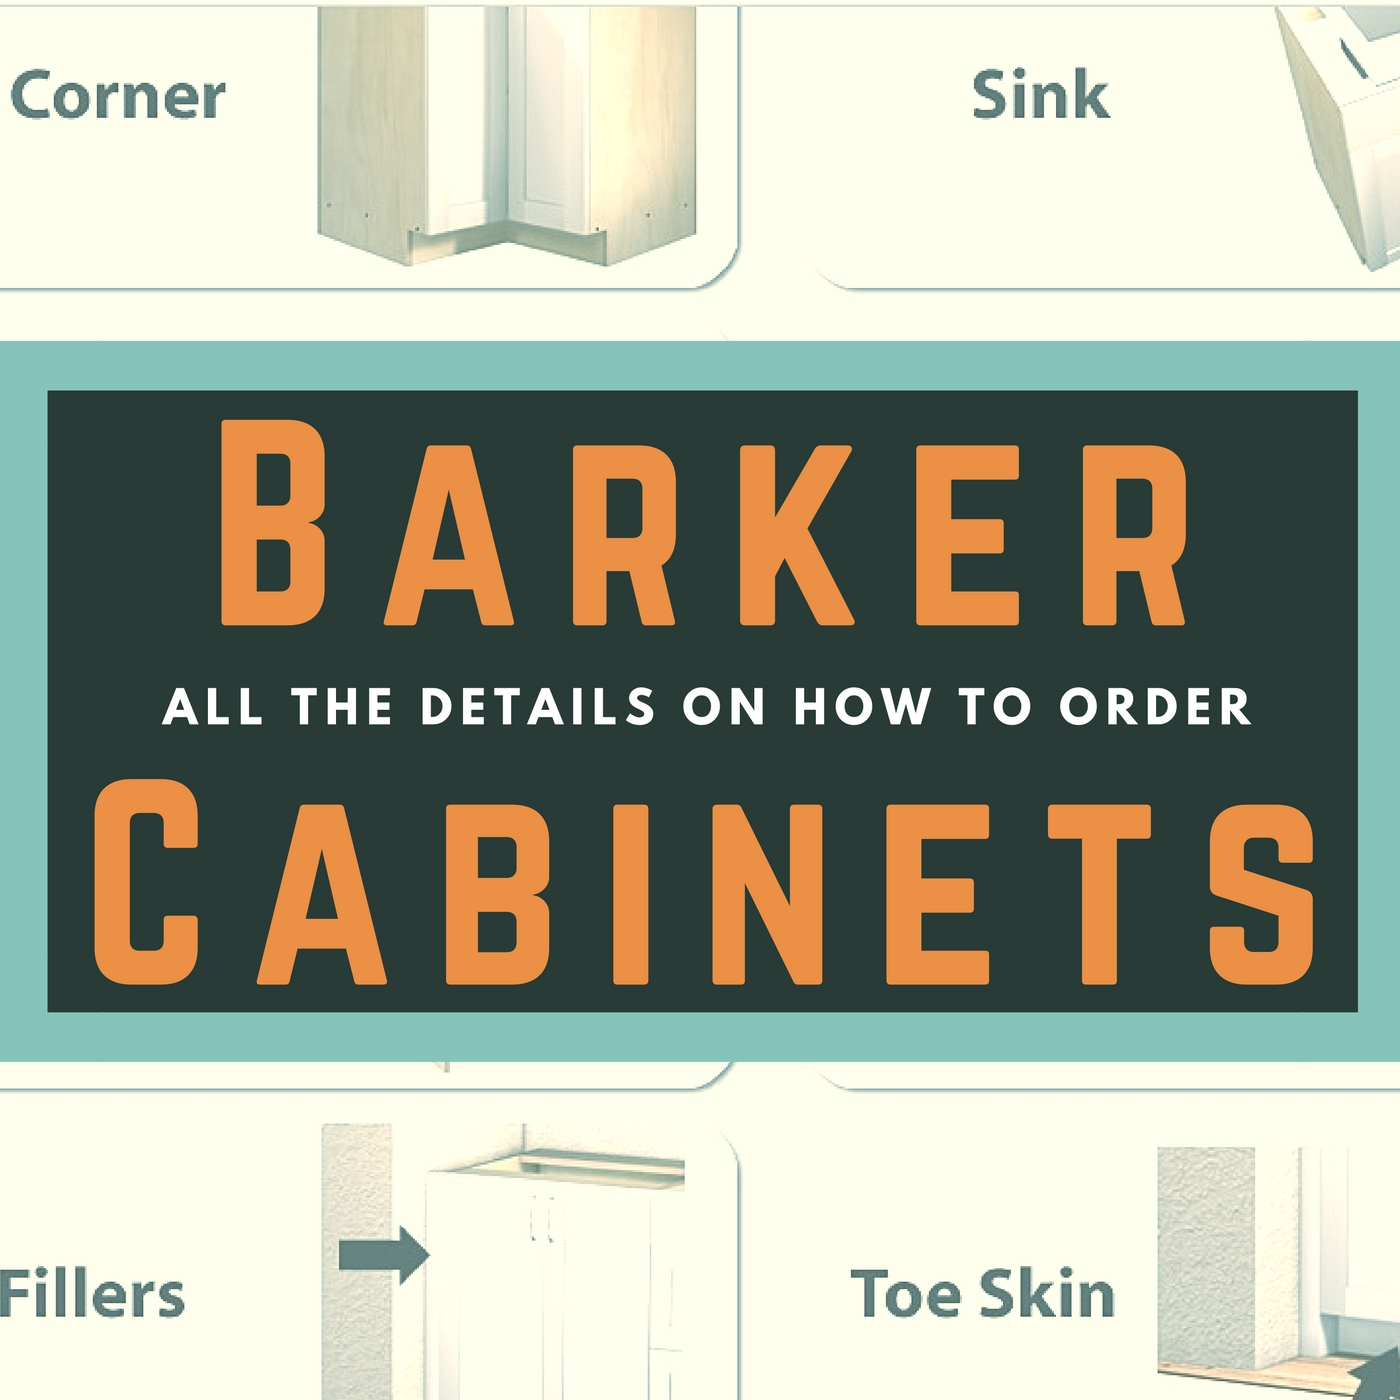 High Quality ... How To Order Barker Cabinets